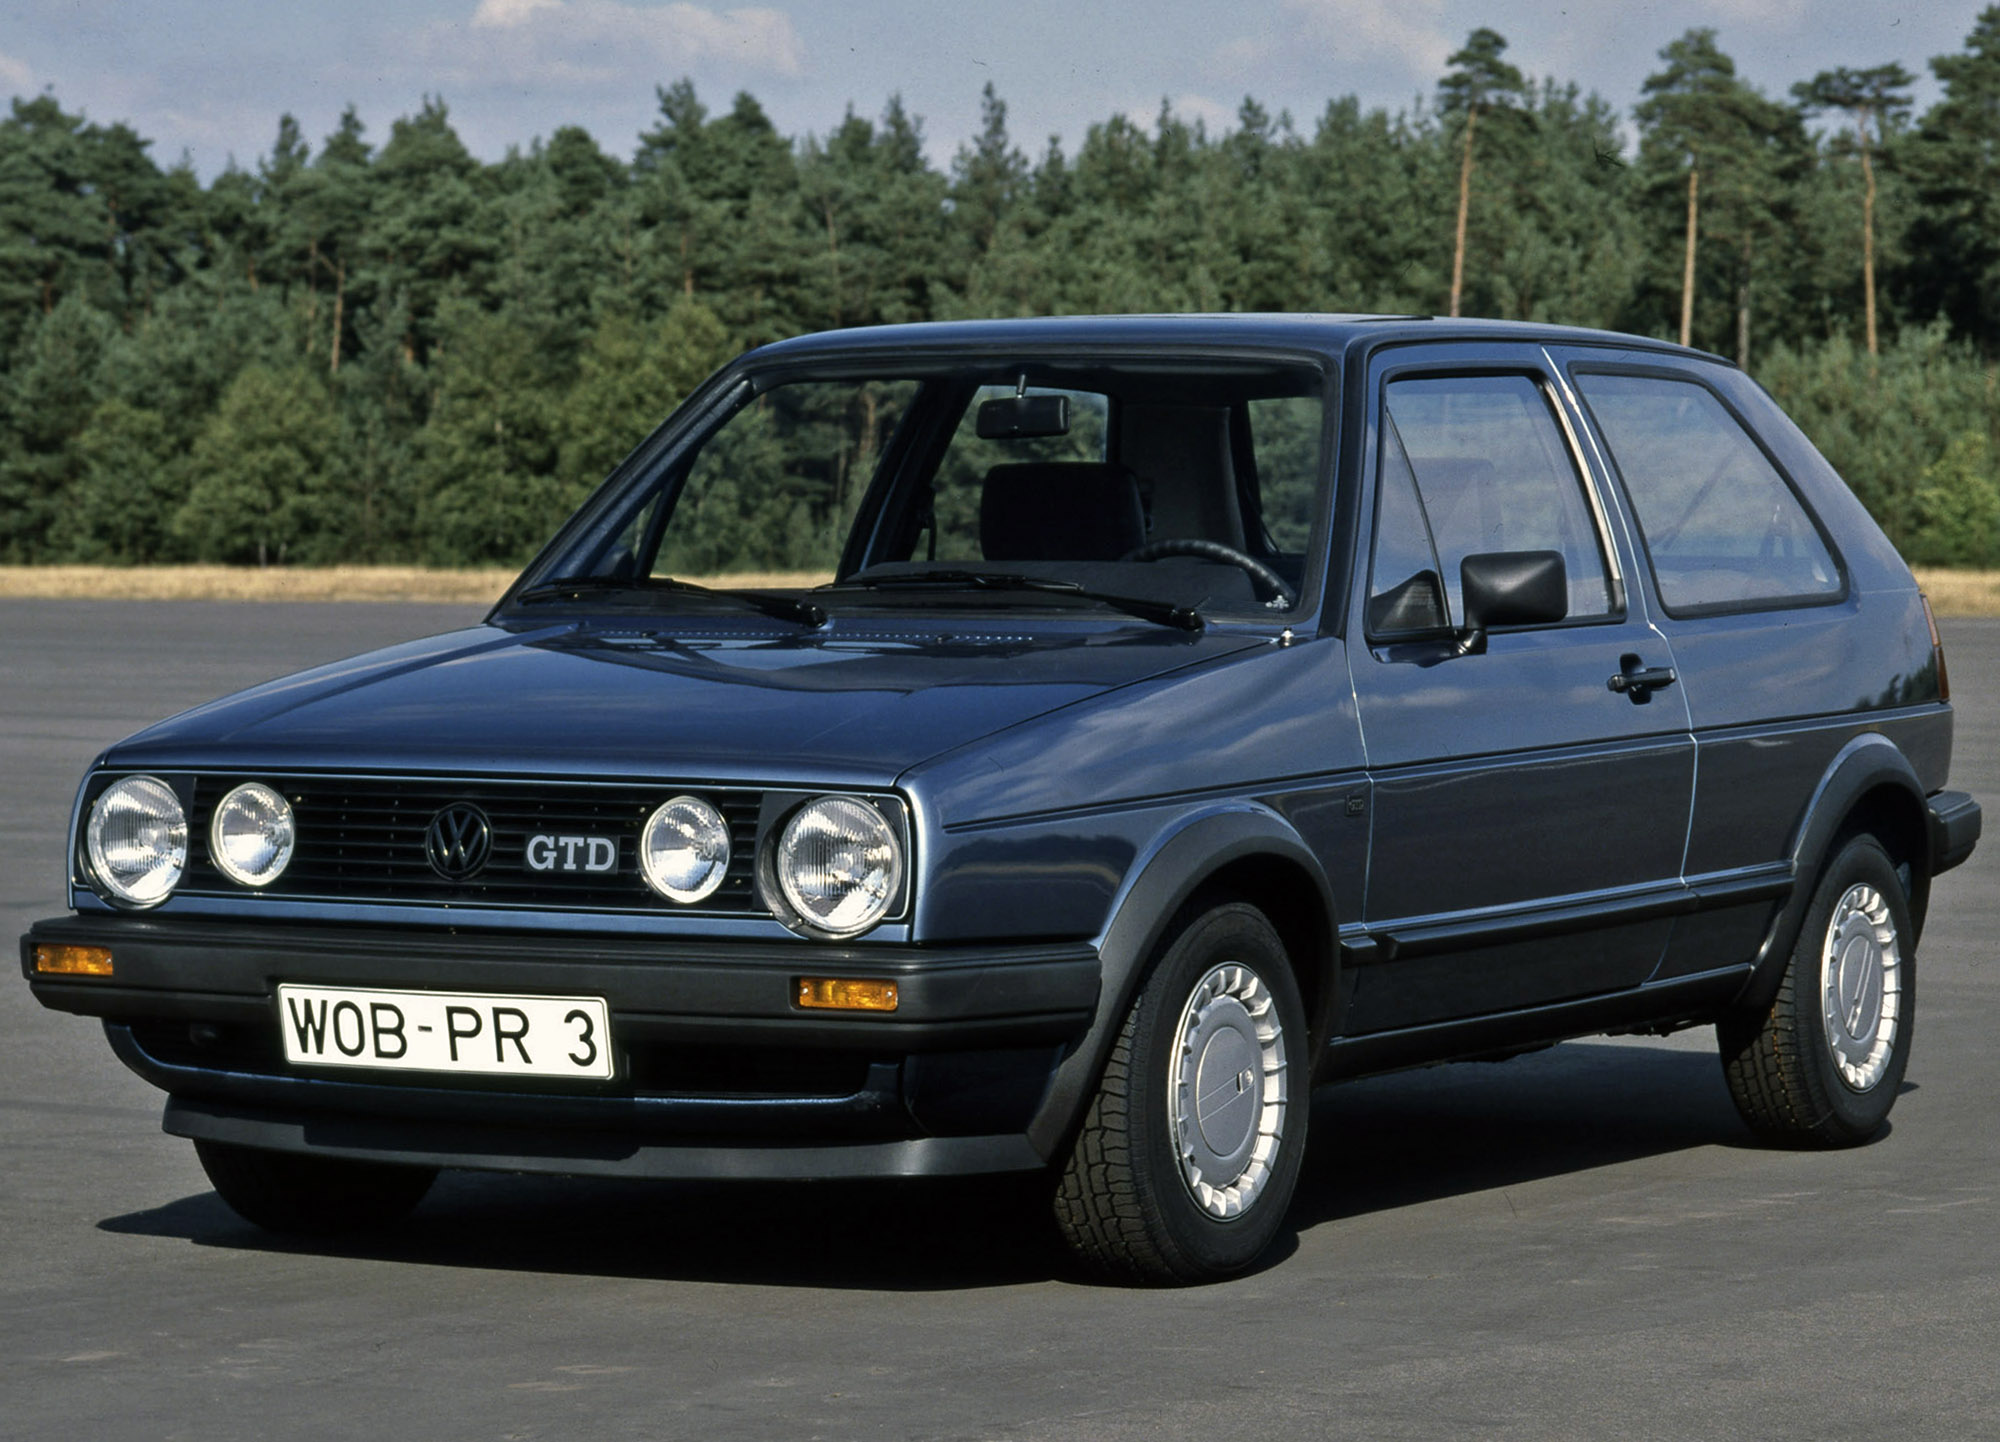 Volkswagen Golf Gtd 35 Years Of Fast And Frugal Fun Influx